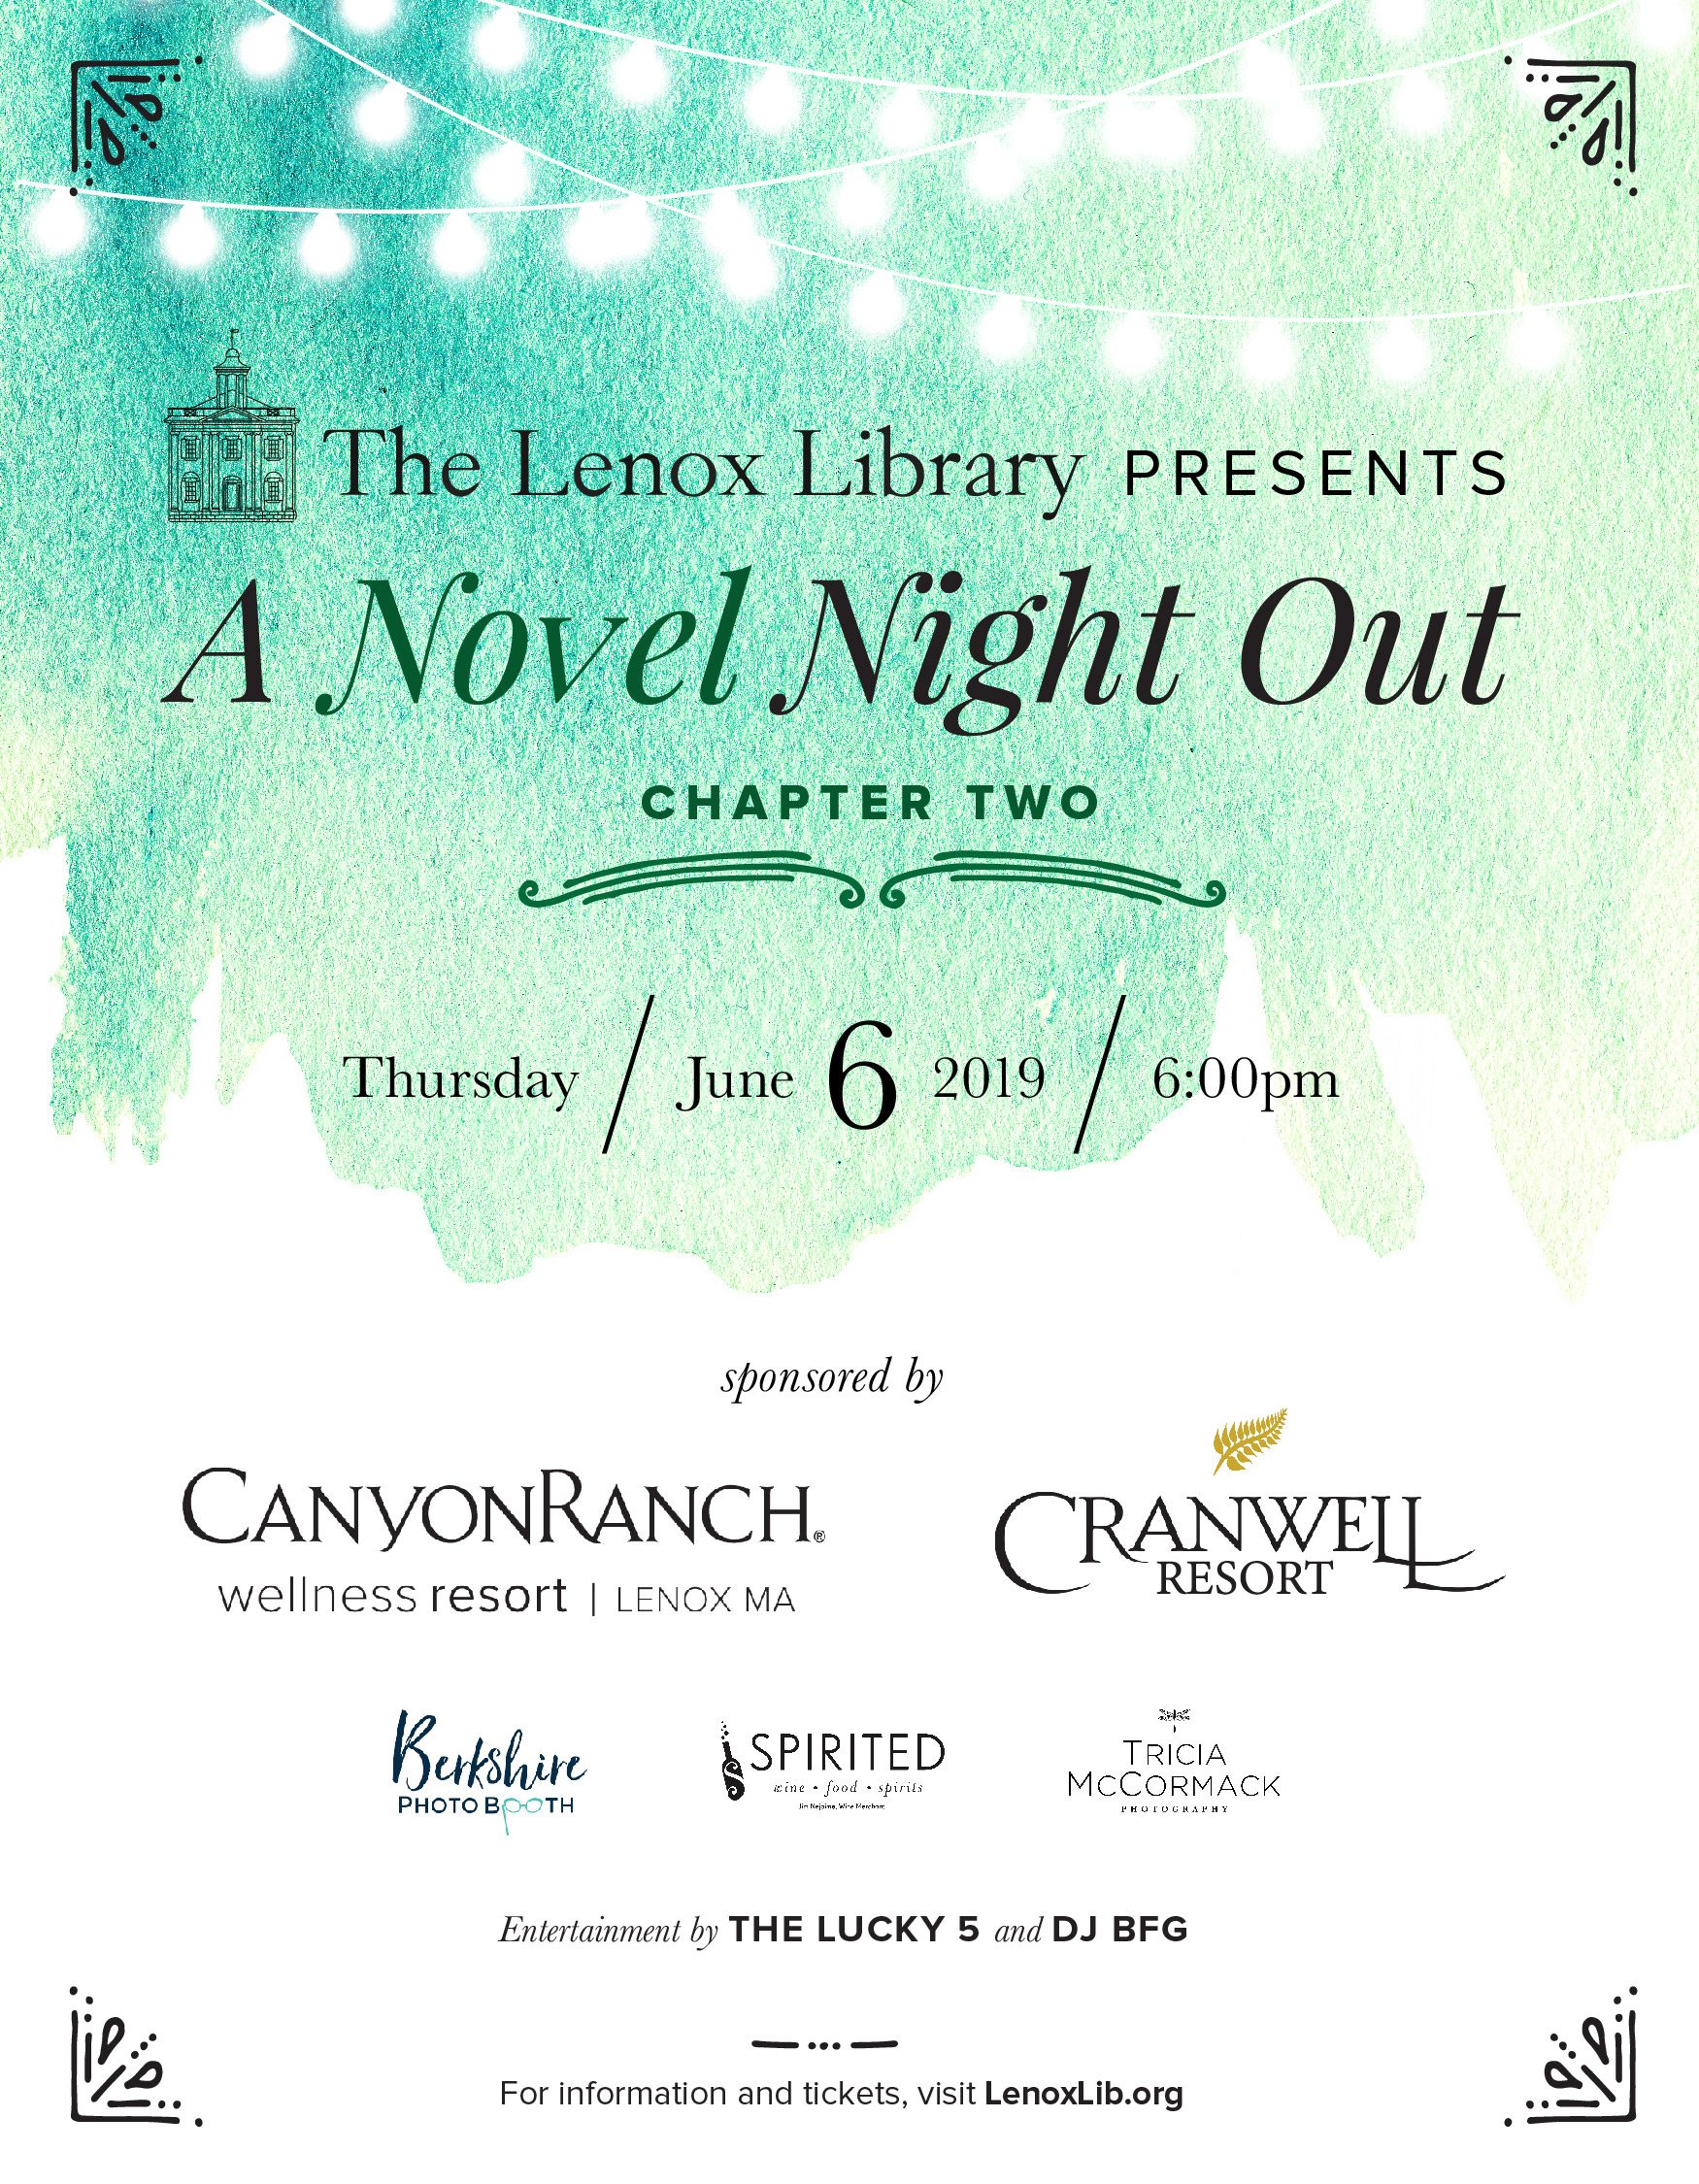 A Novel Night Out at the Lenox Library